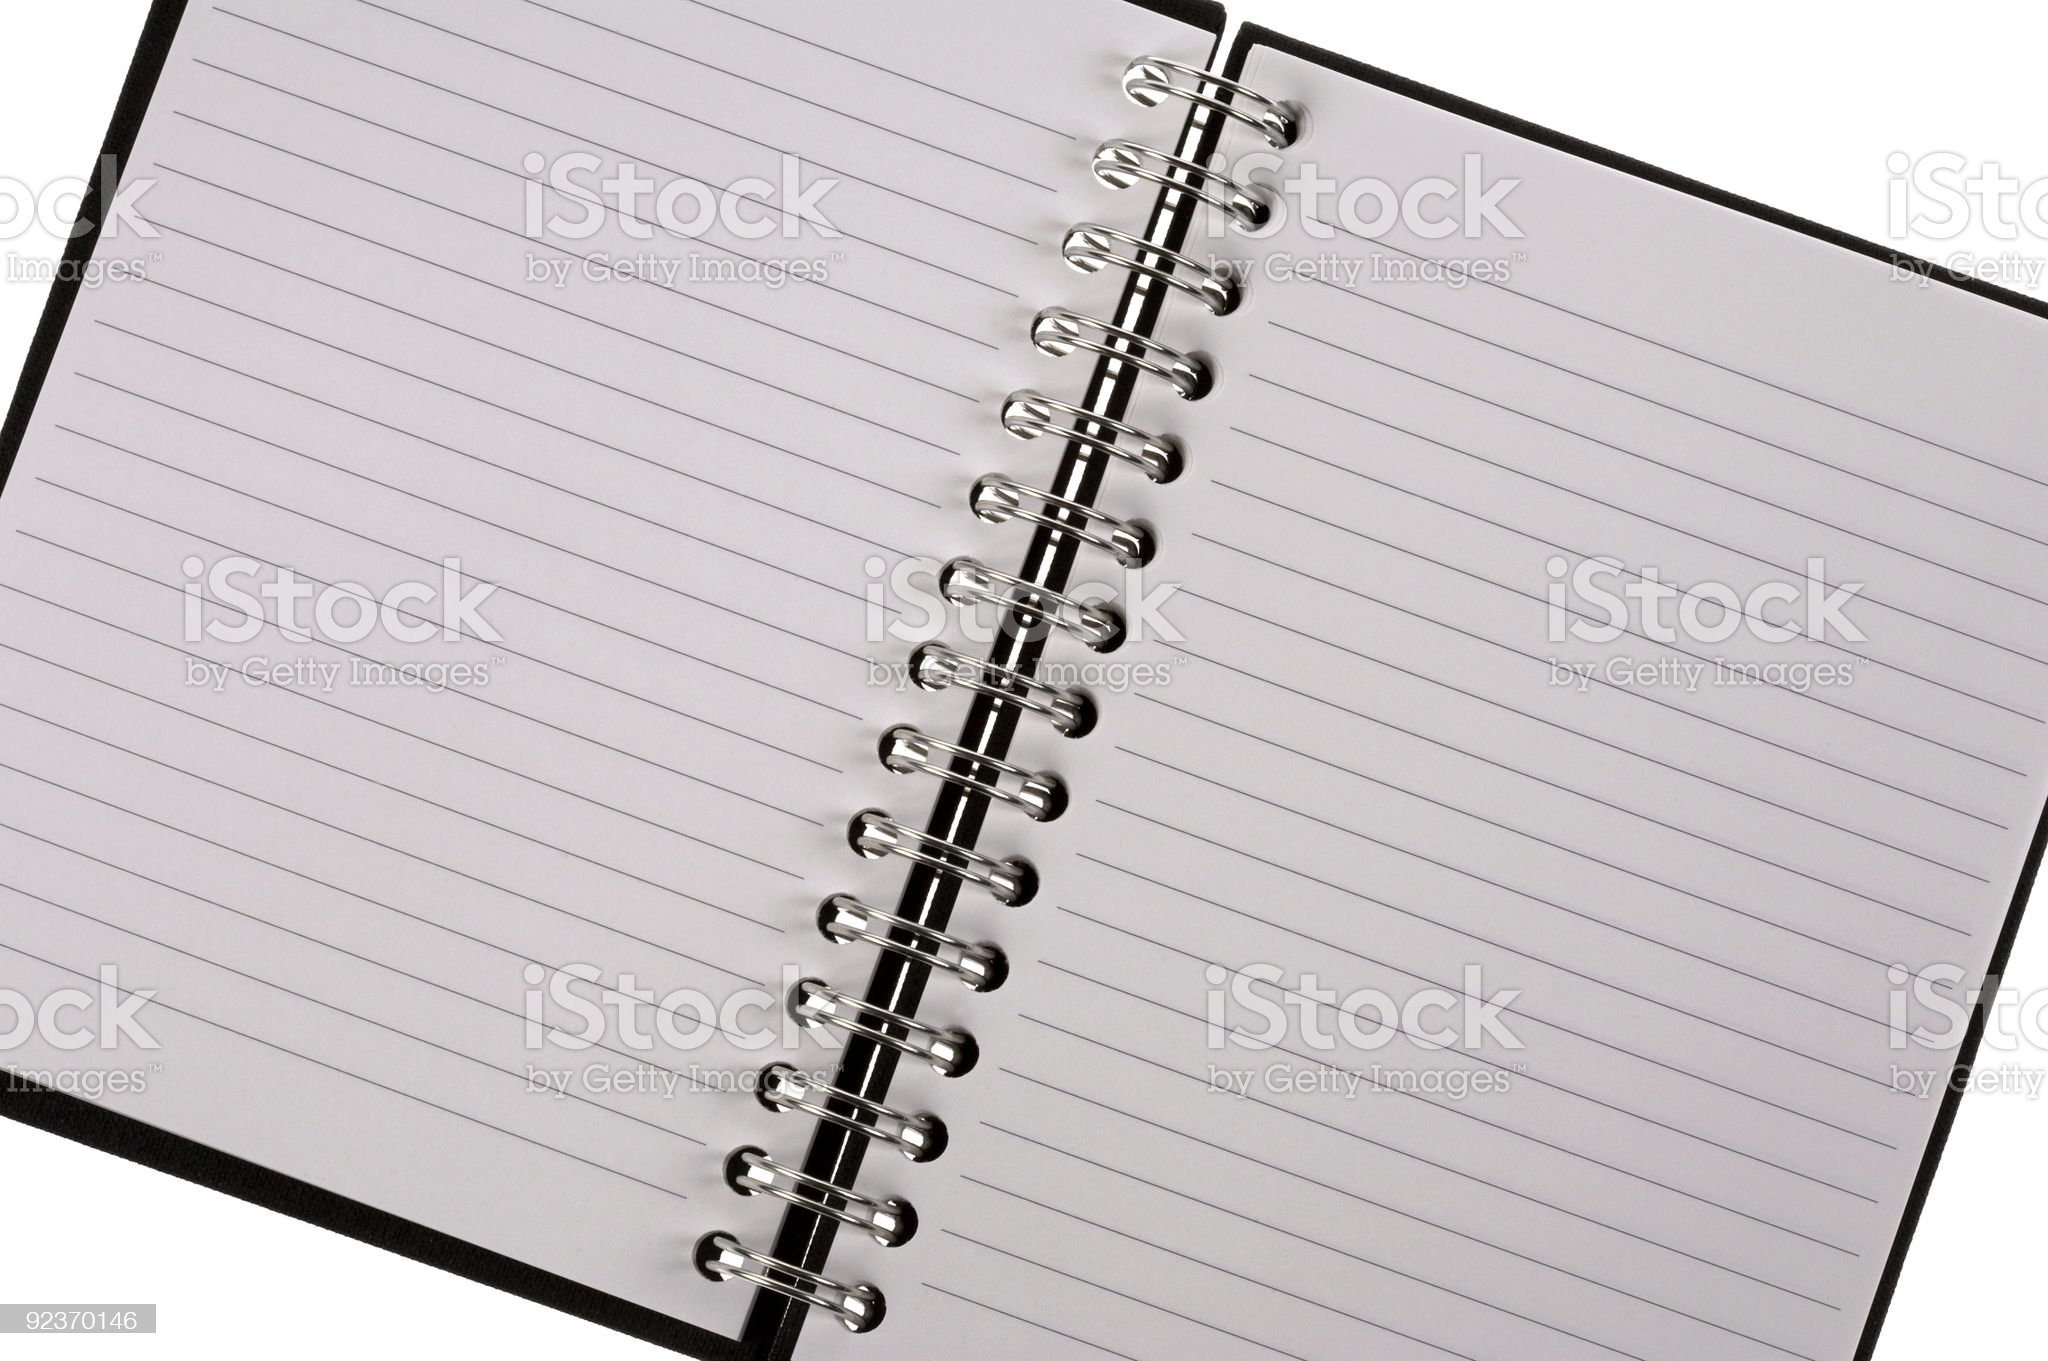 Open spiral bound notepad royalty-free stock photo